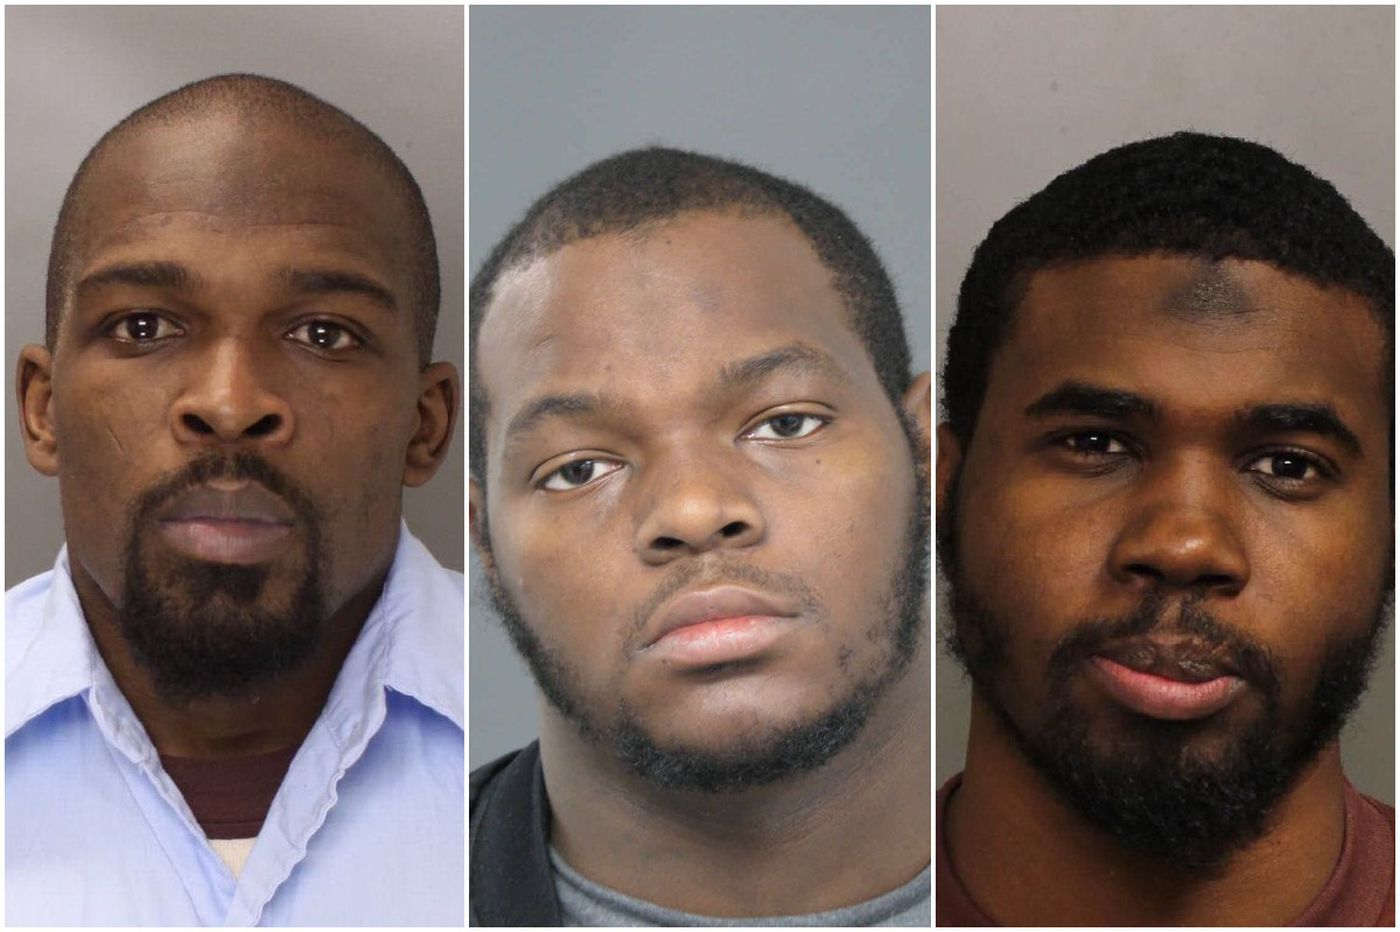 Philly men behind violent Bucks County home invasion sentenced to decades in prison